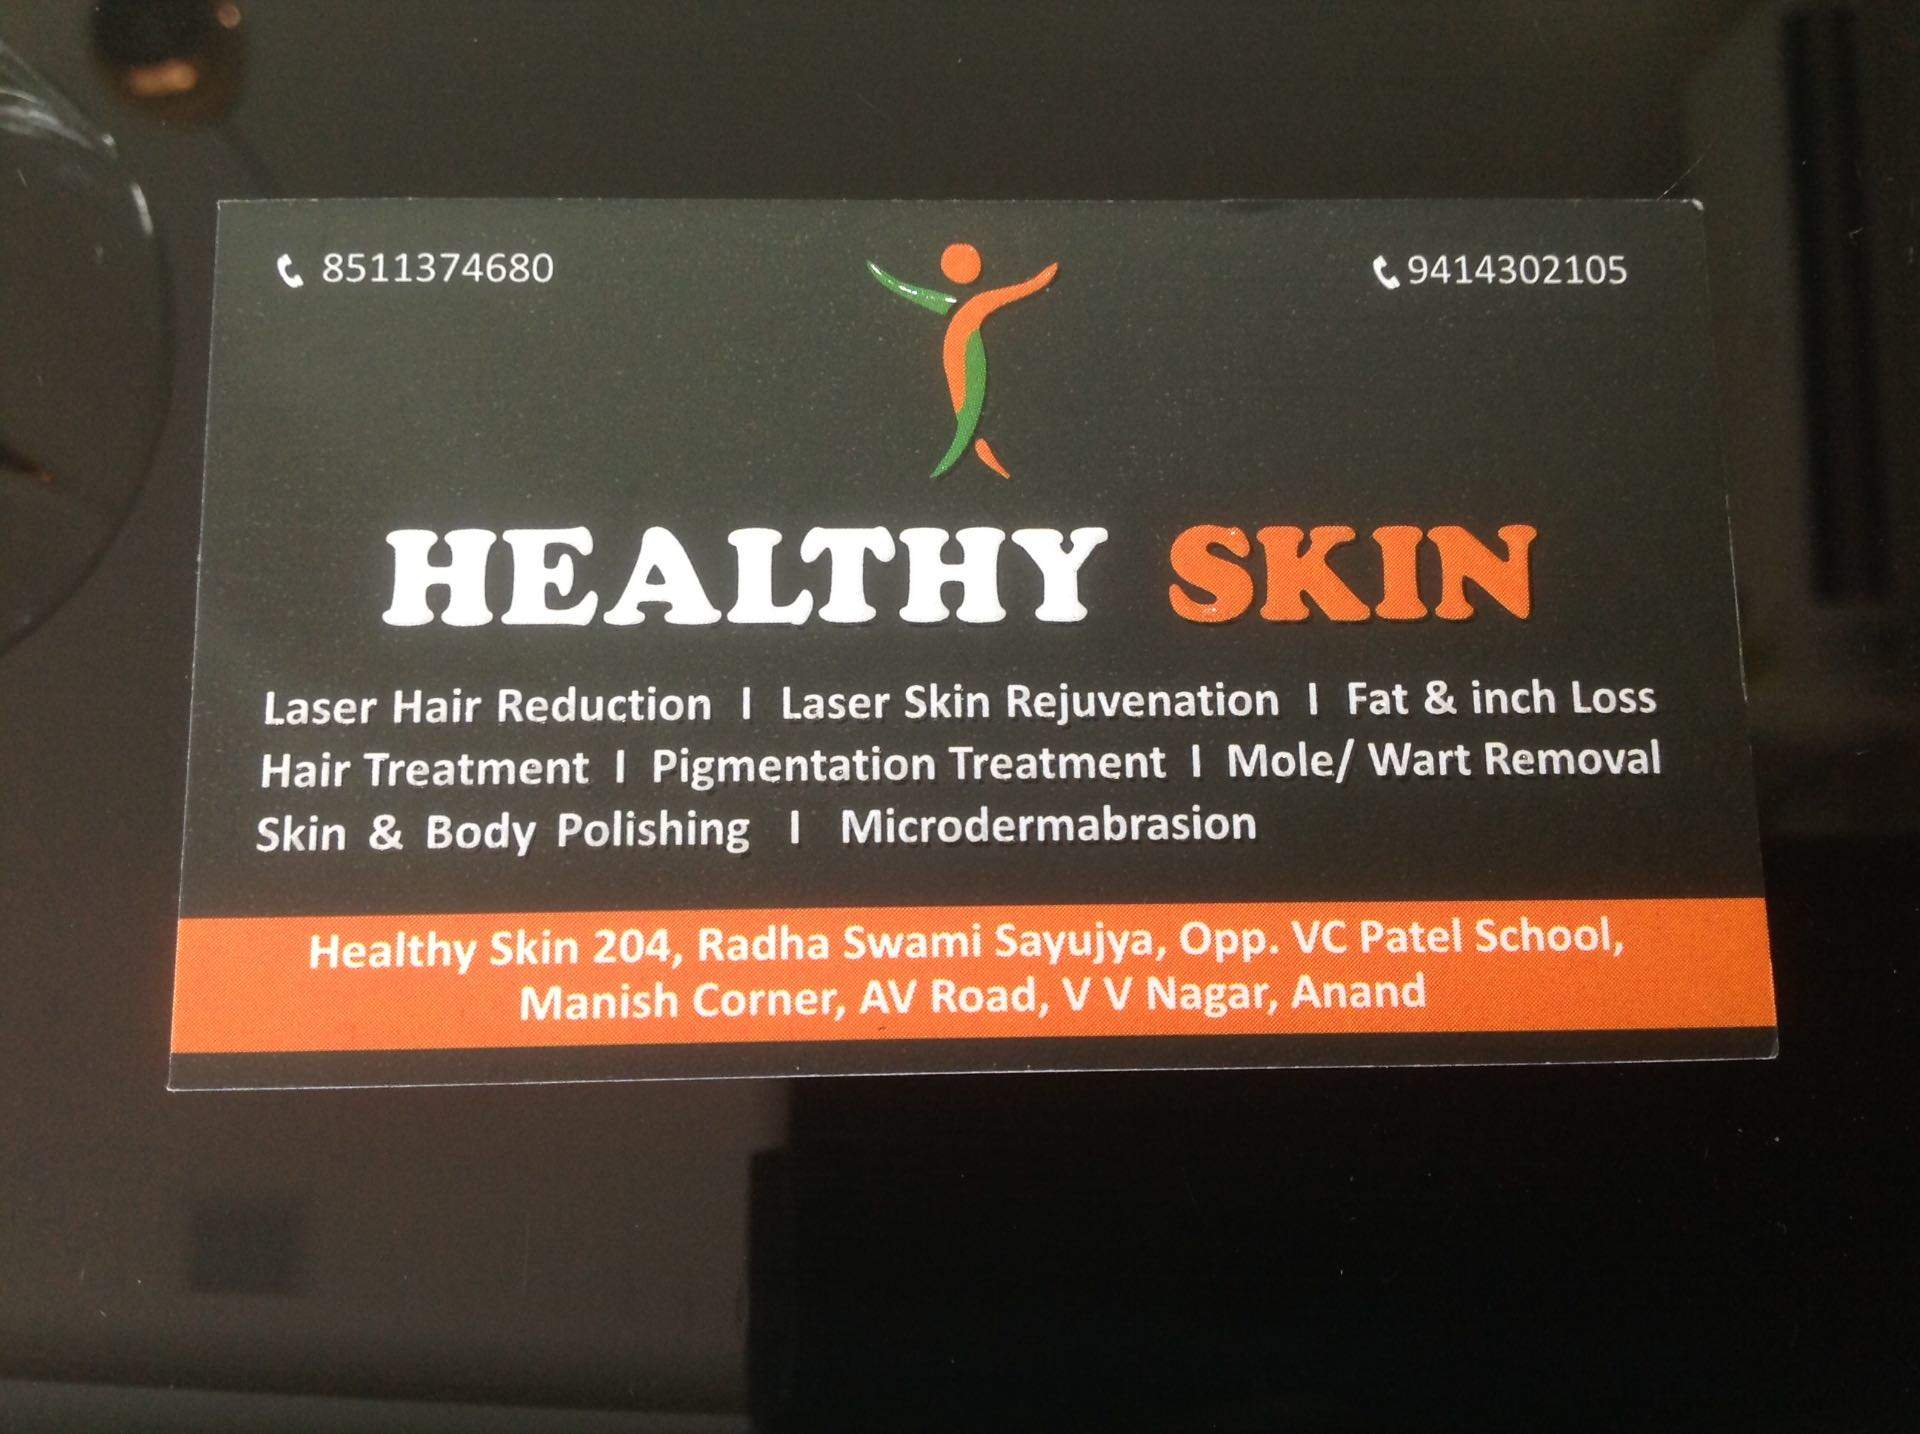 Best Laser Hair Removal Treatment in Anand - Book